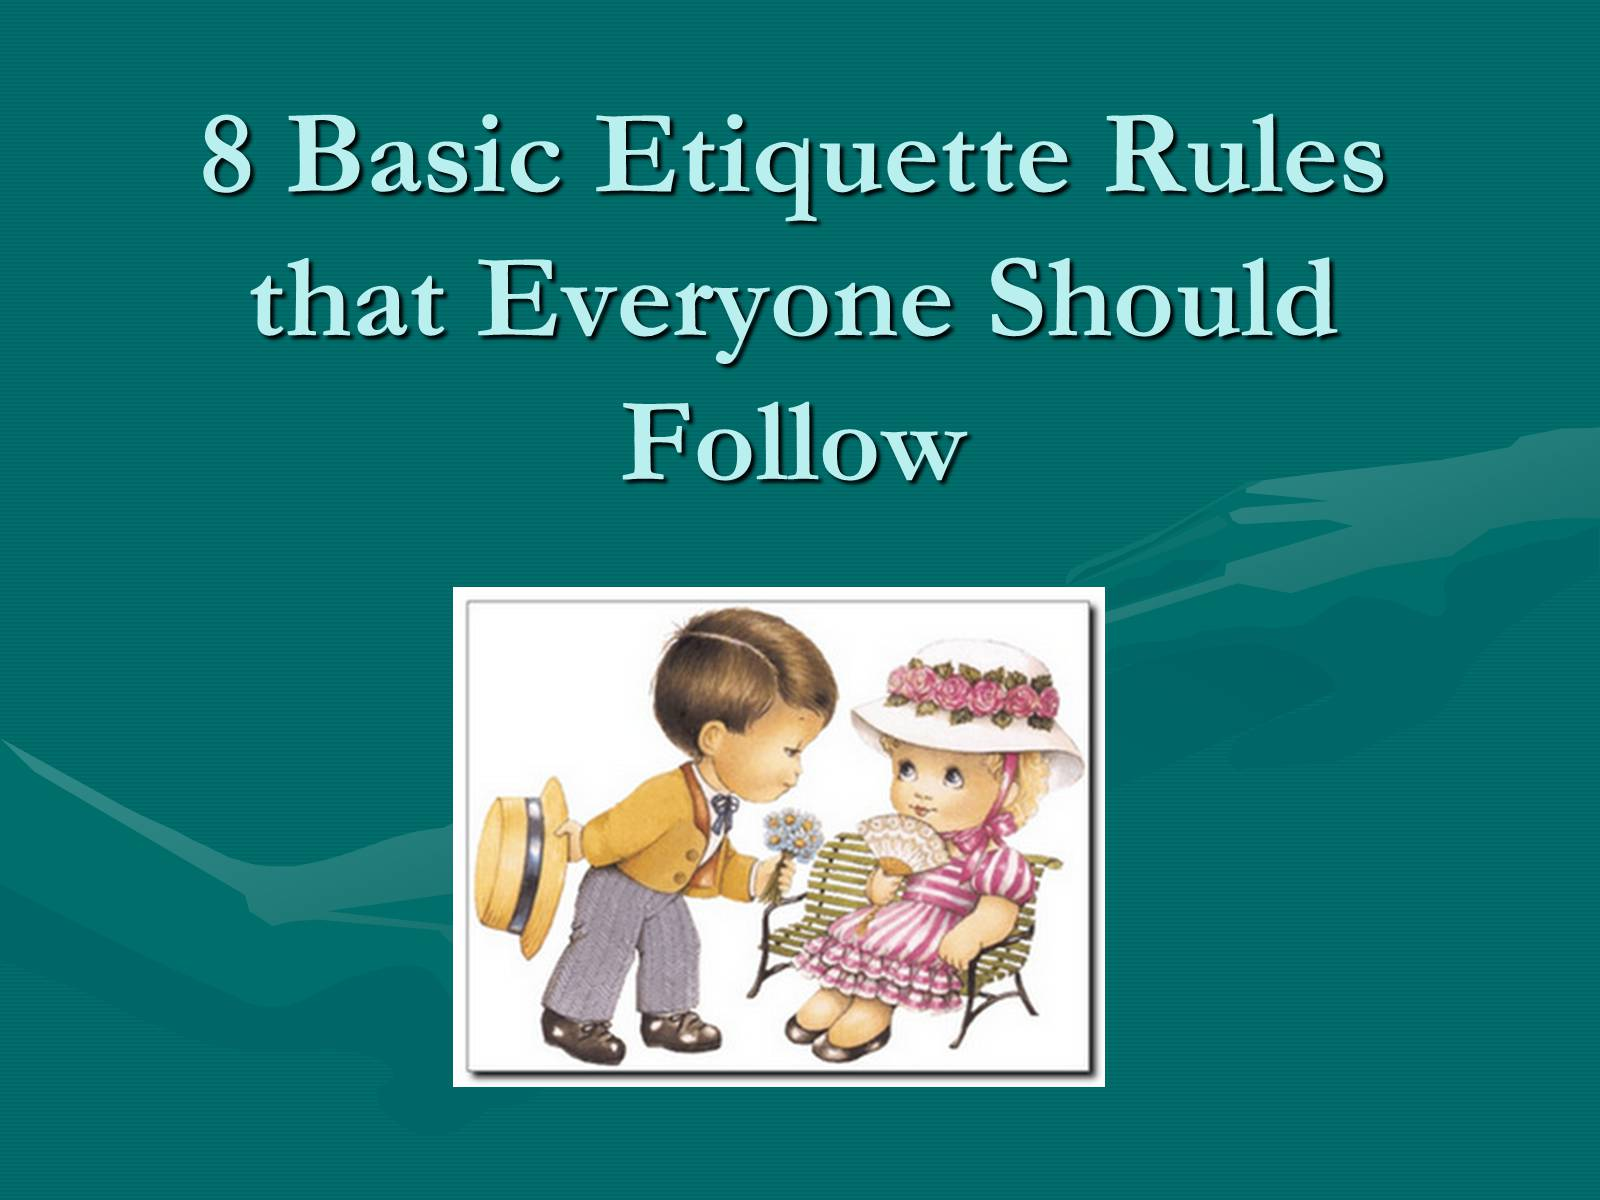 Презентація на тему «8 Basic Etiquette Rules that Everyone Should Follow»